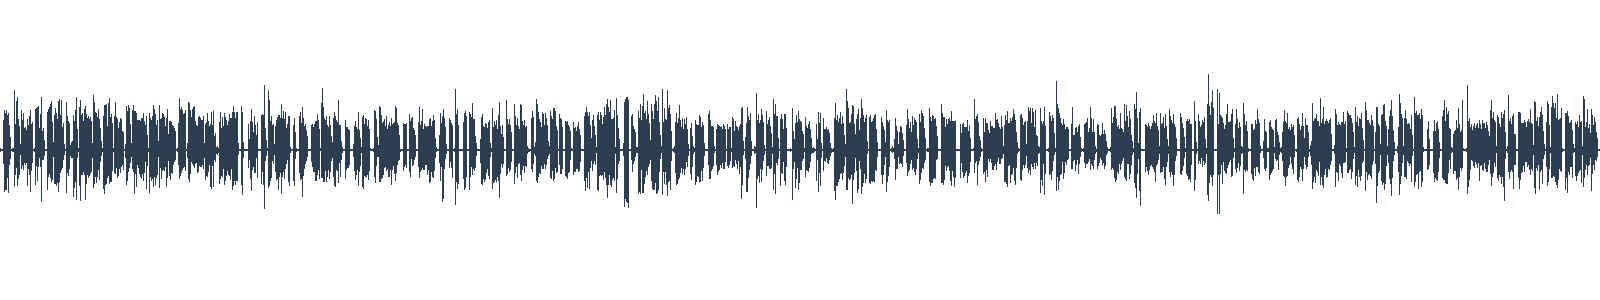 Websterovci 2 waveform